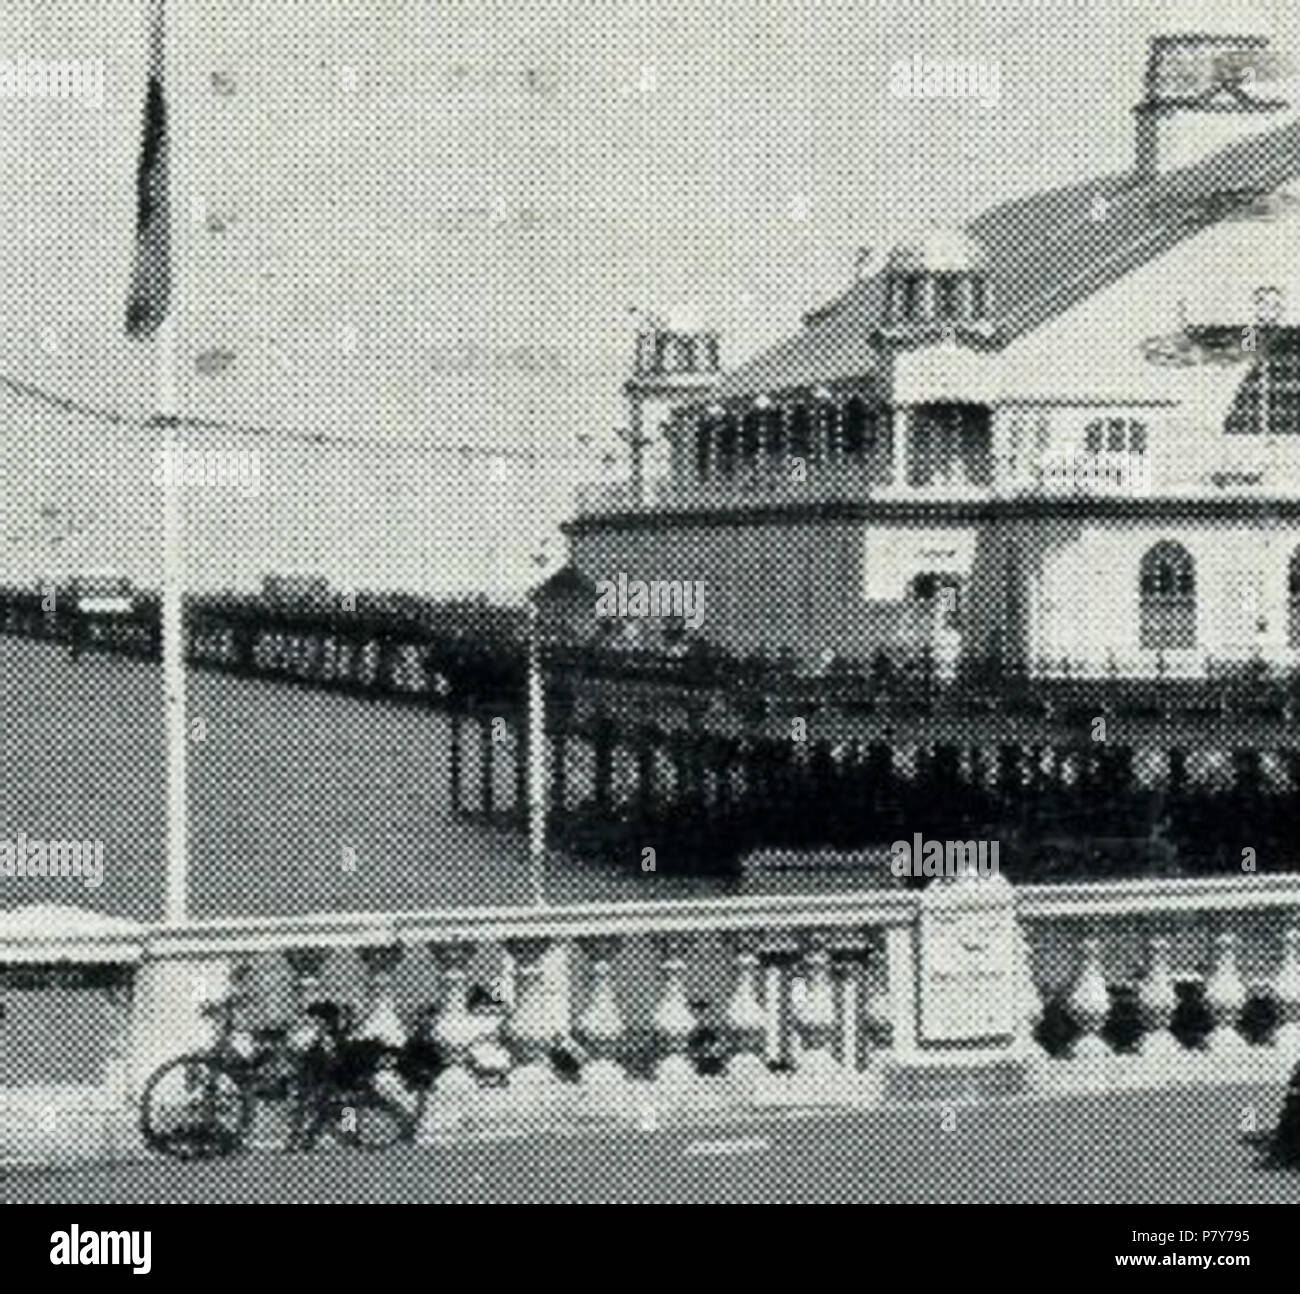 English: Section from postcard of the third Herne Bay Pier, built 1899. This section shows the stone balustrade taken from London Bridge and used for the entrance of the first Herne Bay Pier in 1832. It was repositioned a few times and by the time of this photo it had been there 100 years. It was removed in 1953 after storm damage. Its present whereabouts are unknown. postmarked 1939 192 3rd Herne Bay Pier 1932-1939 002a - Stock Image